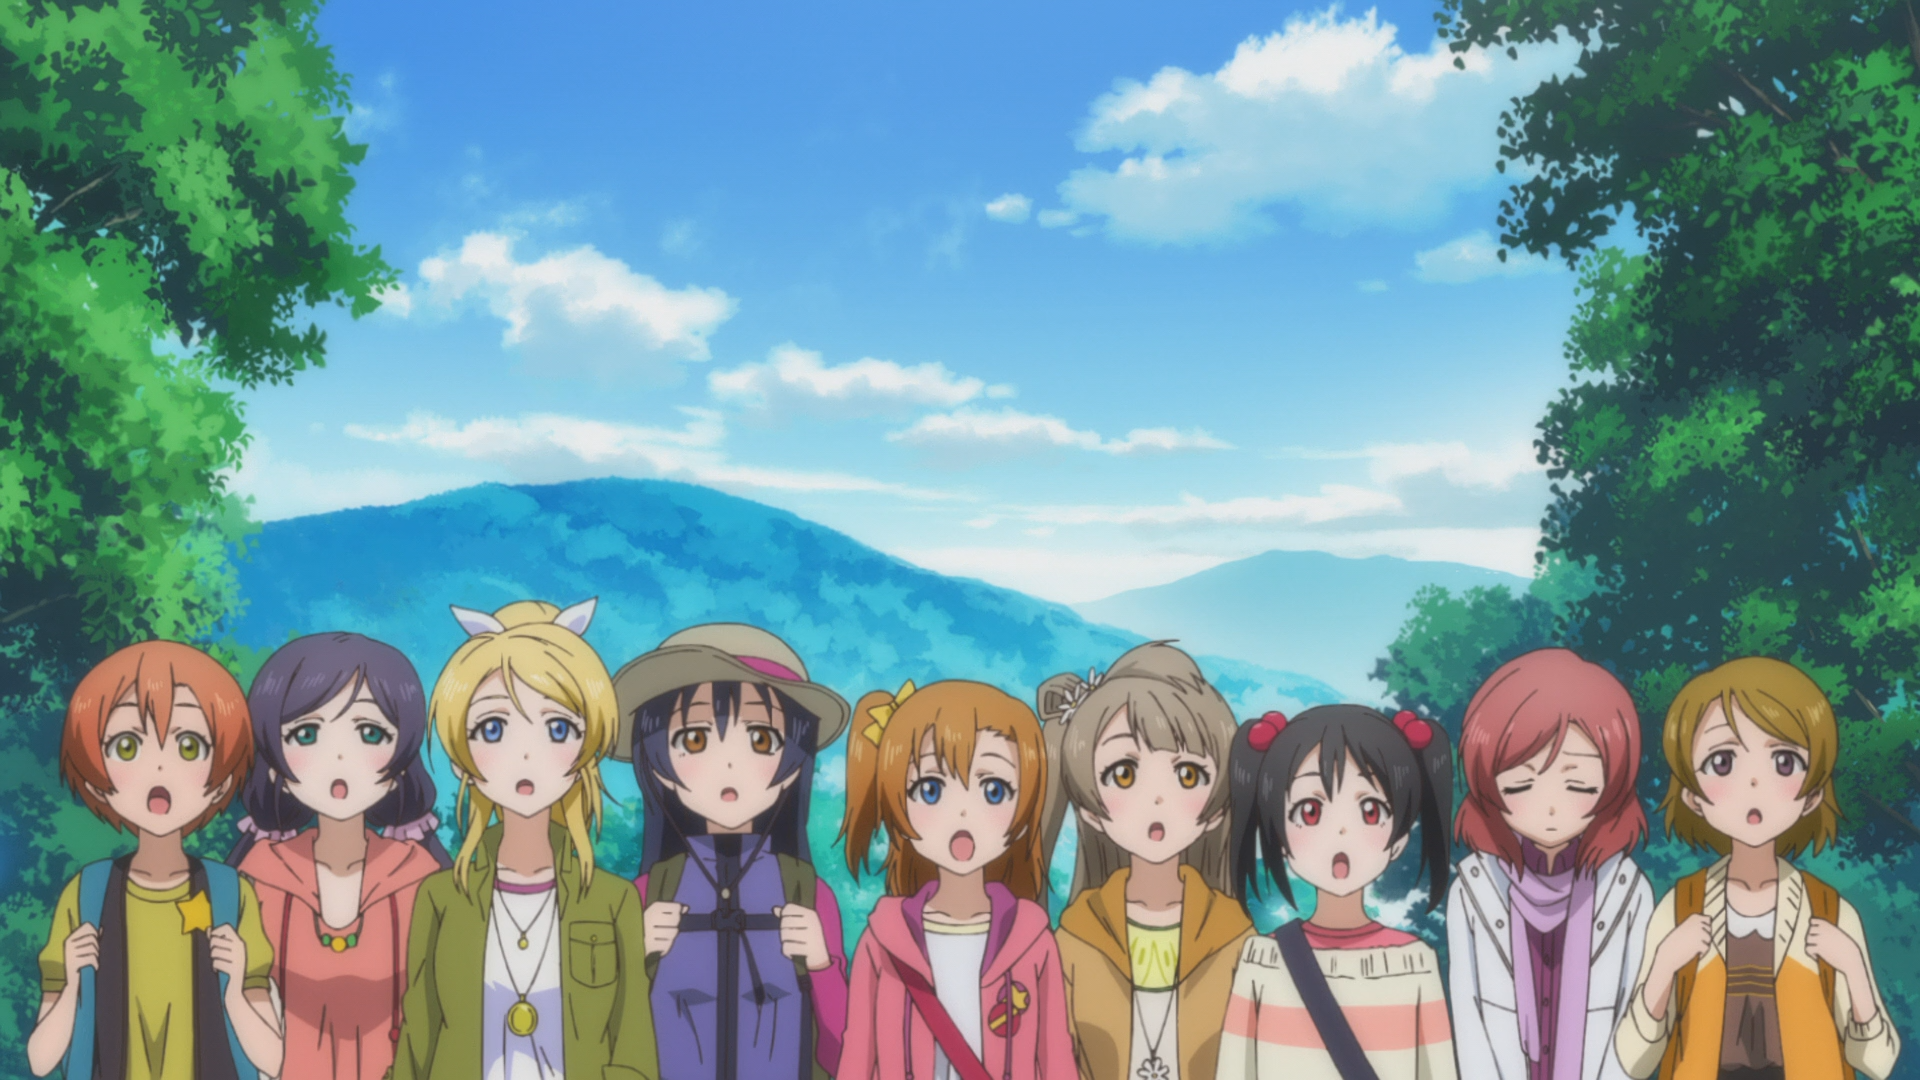 https://vignette.wikia.nocookie.net/love-live/images/5/59/046_S2Ep2.png/revision/latest?cb=20151018232556